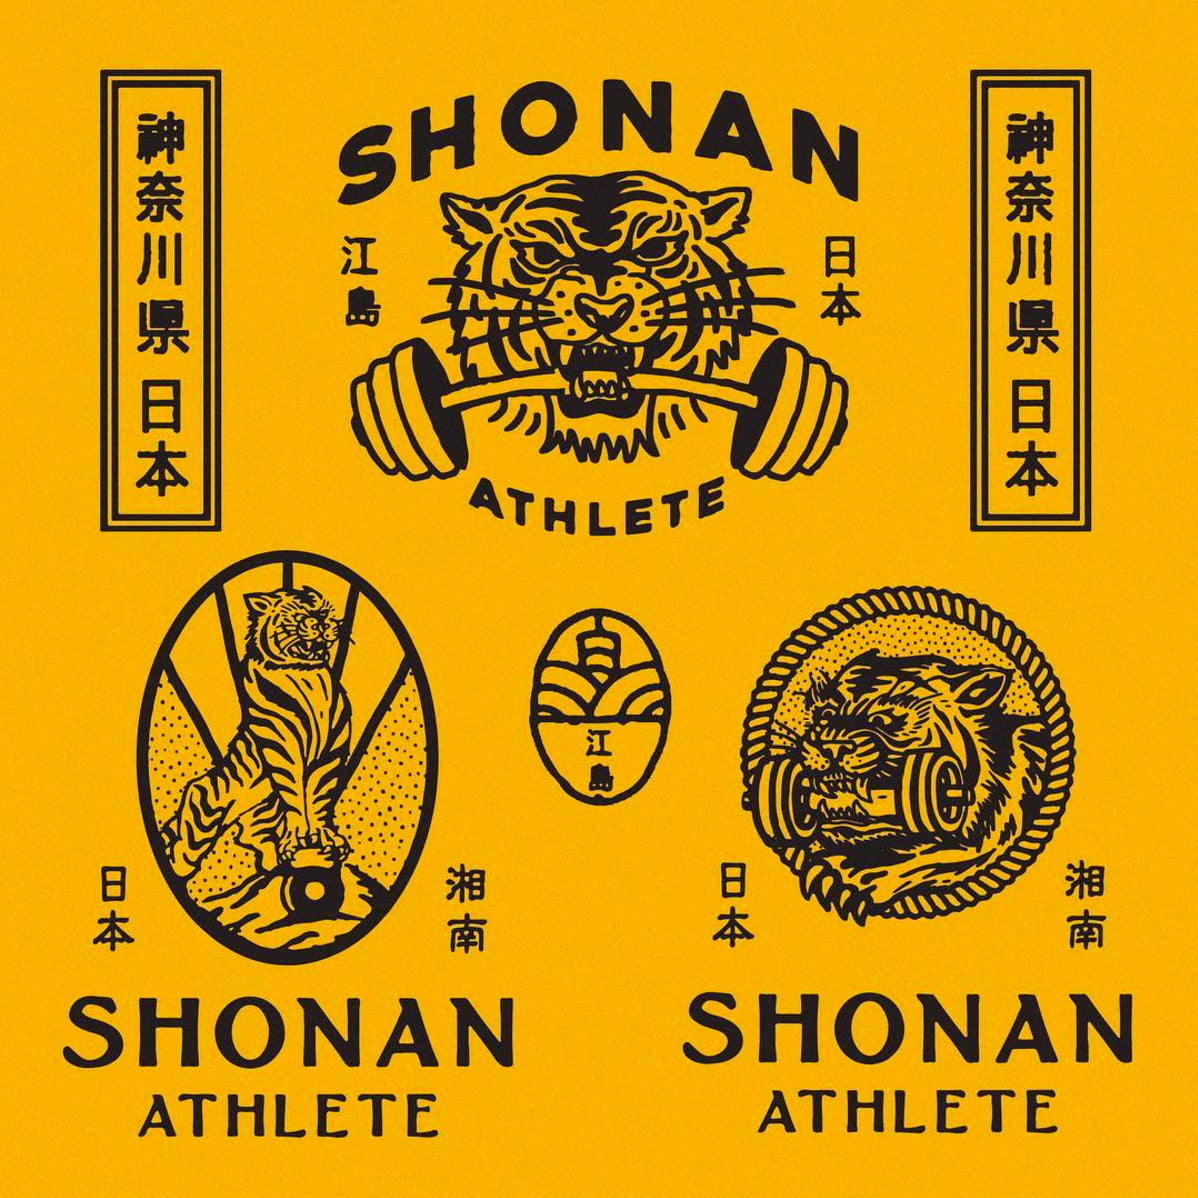 Design for Shonan Athlete, Japan